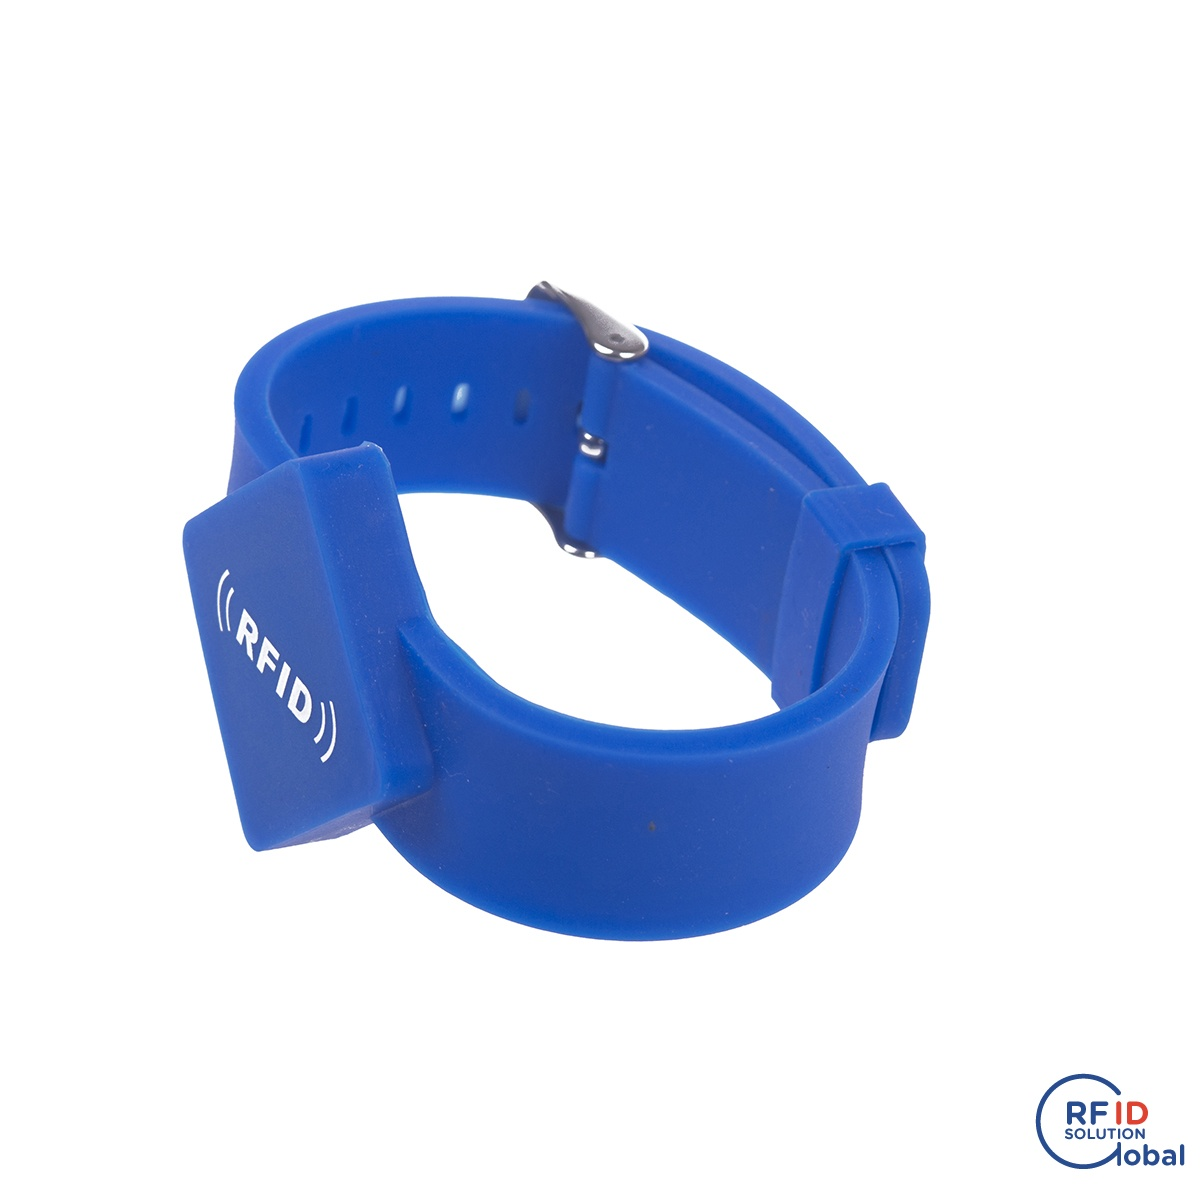 Practical Rfid Bracelet 13.56mhz I-code 2 Soft Silicon Rfid Wristband For Electronic Safe Lock Access Control Cards